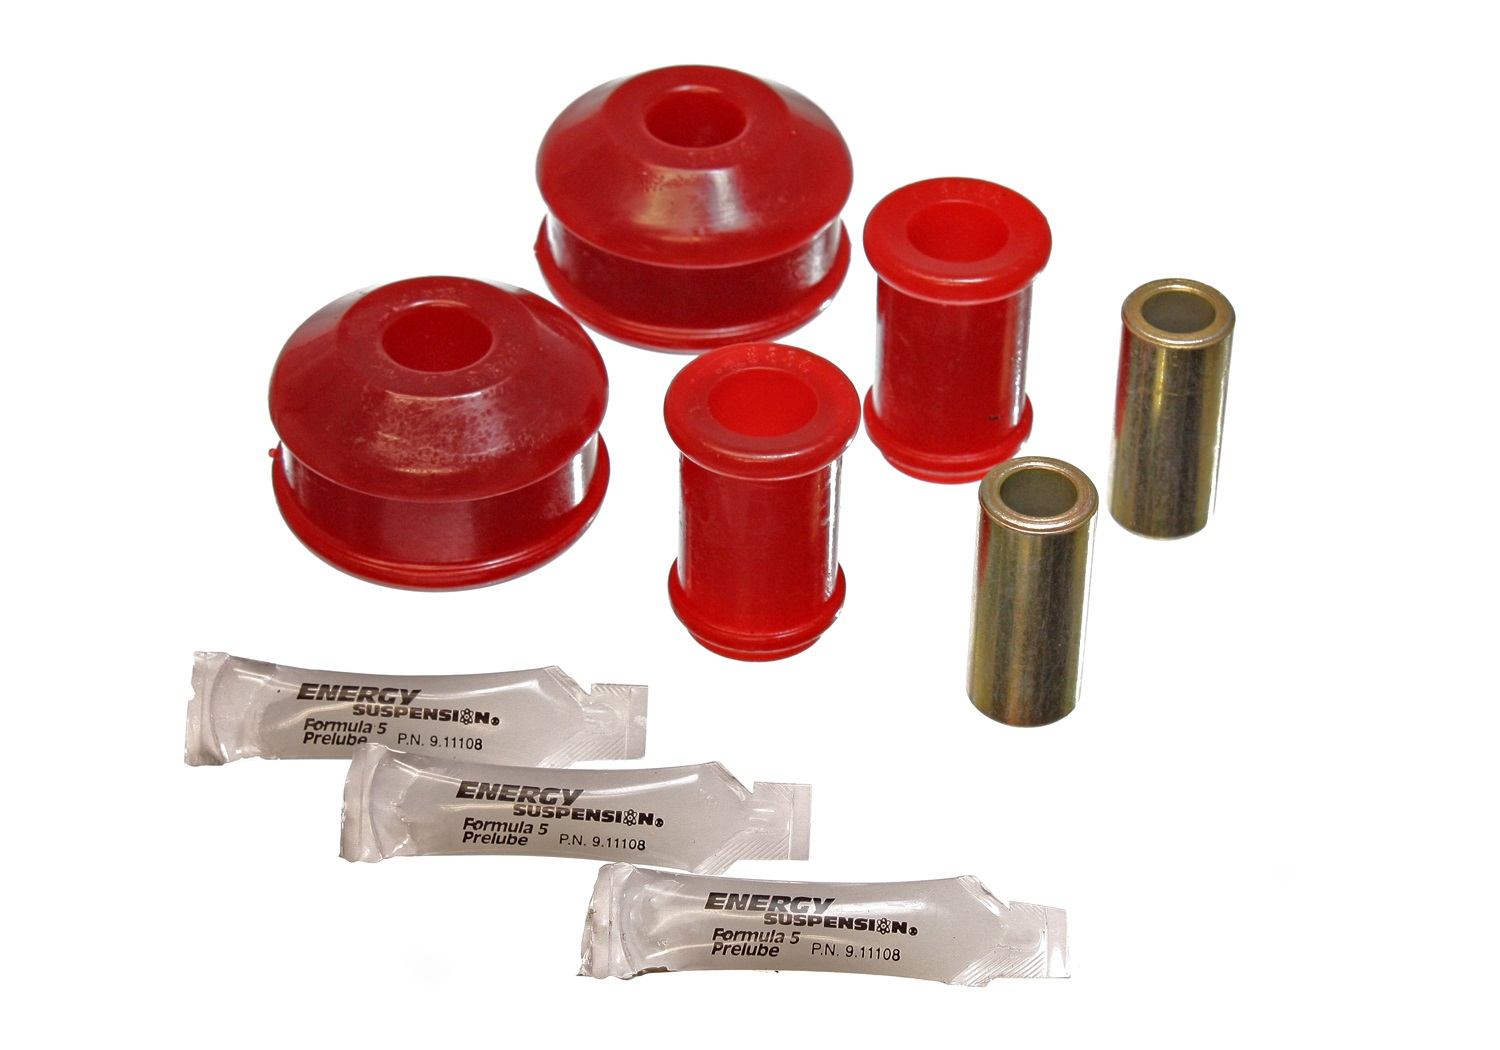 Energy Suspension 8.3118G CONTROL ARM BUSHING SET